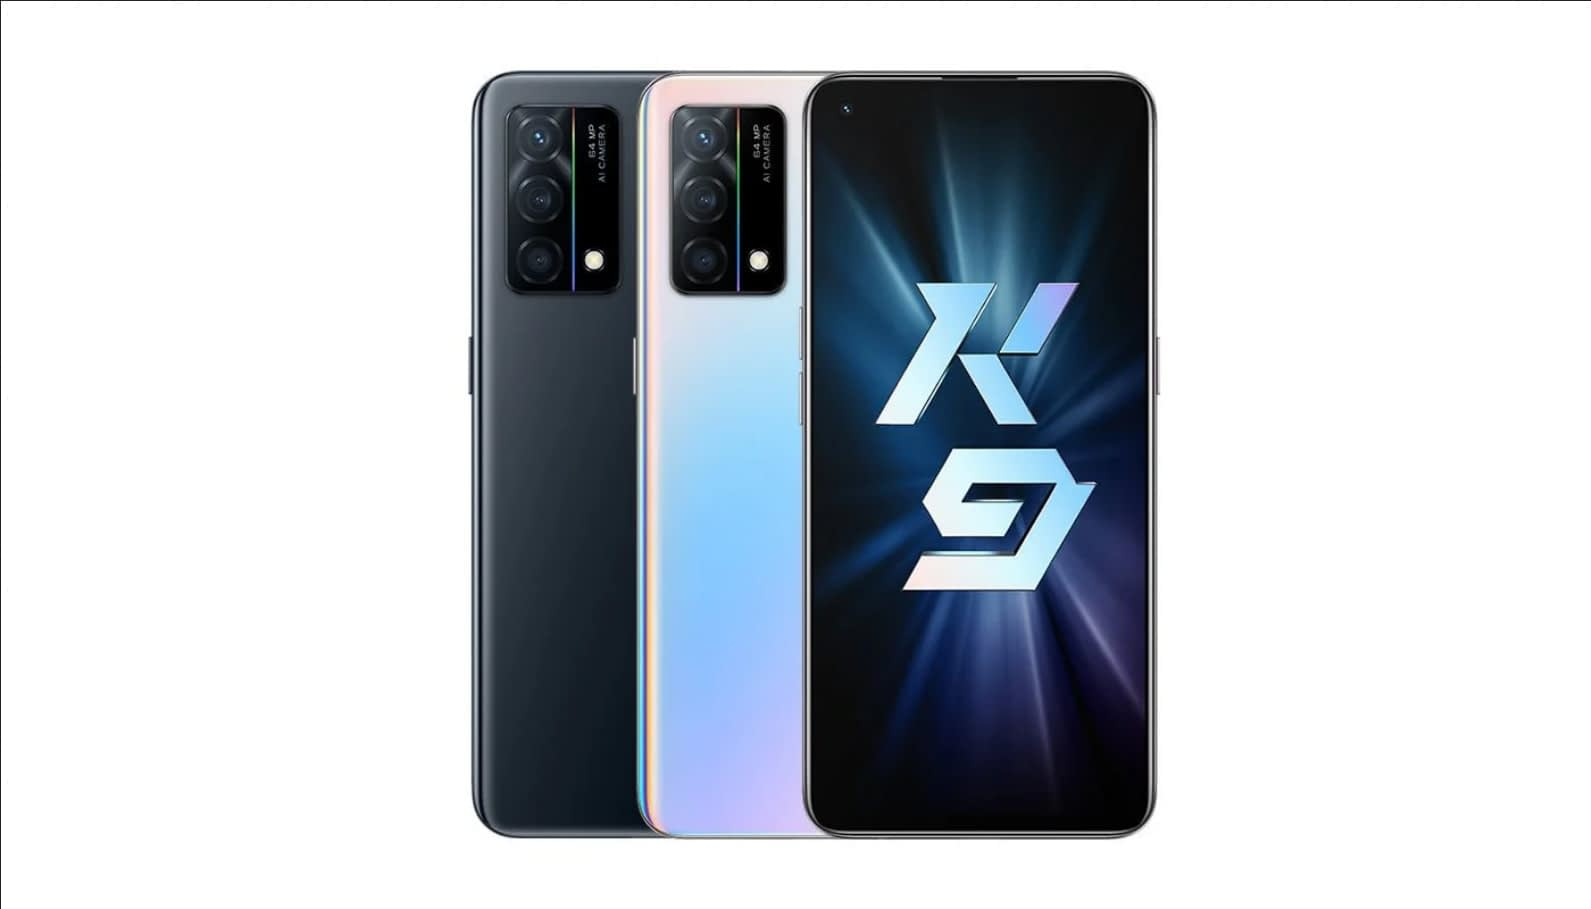 OPPO K9 5G in Black and Gradient Colours